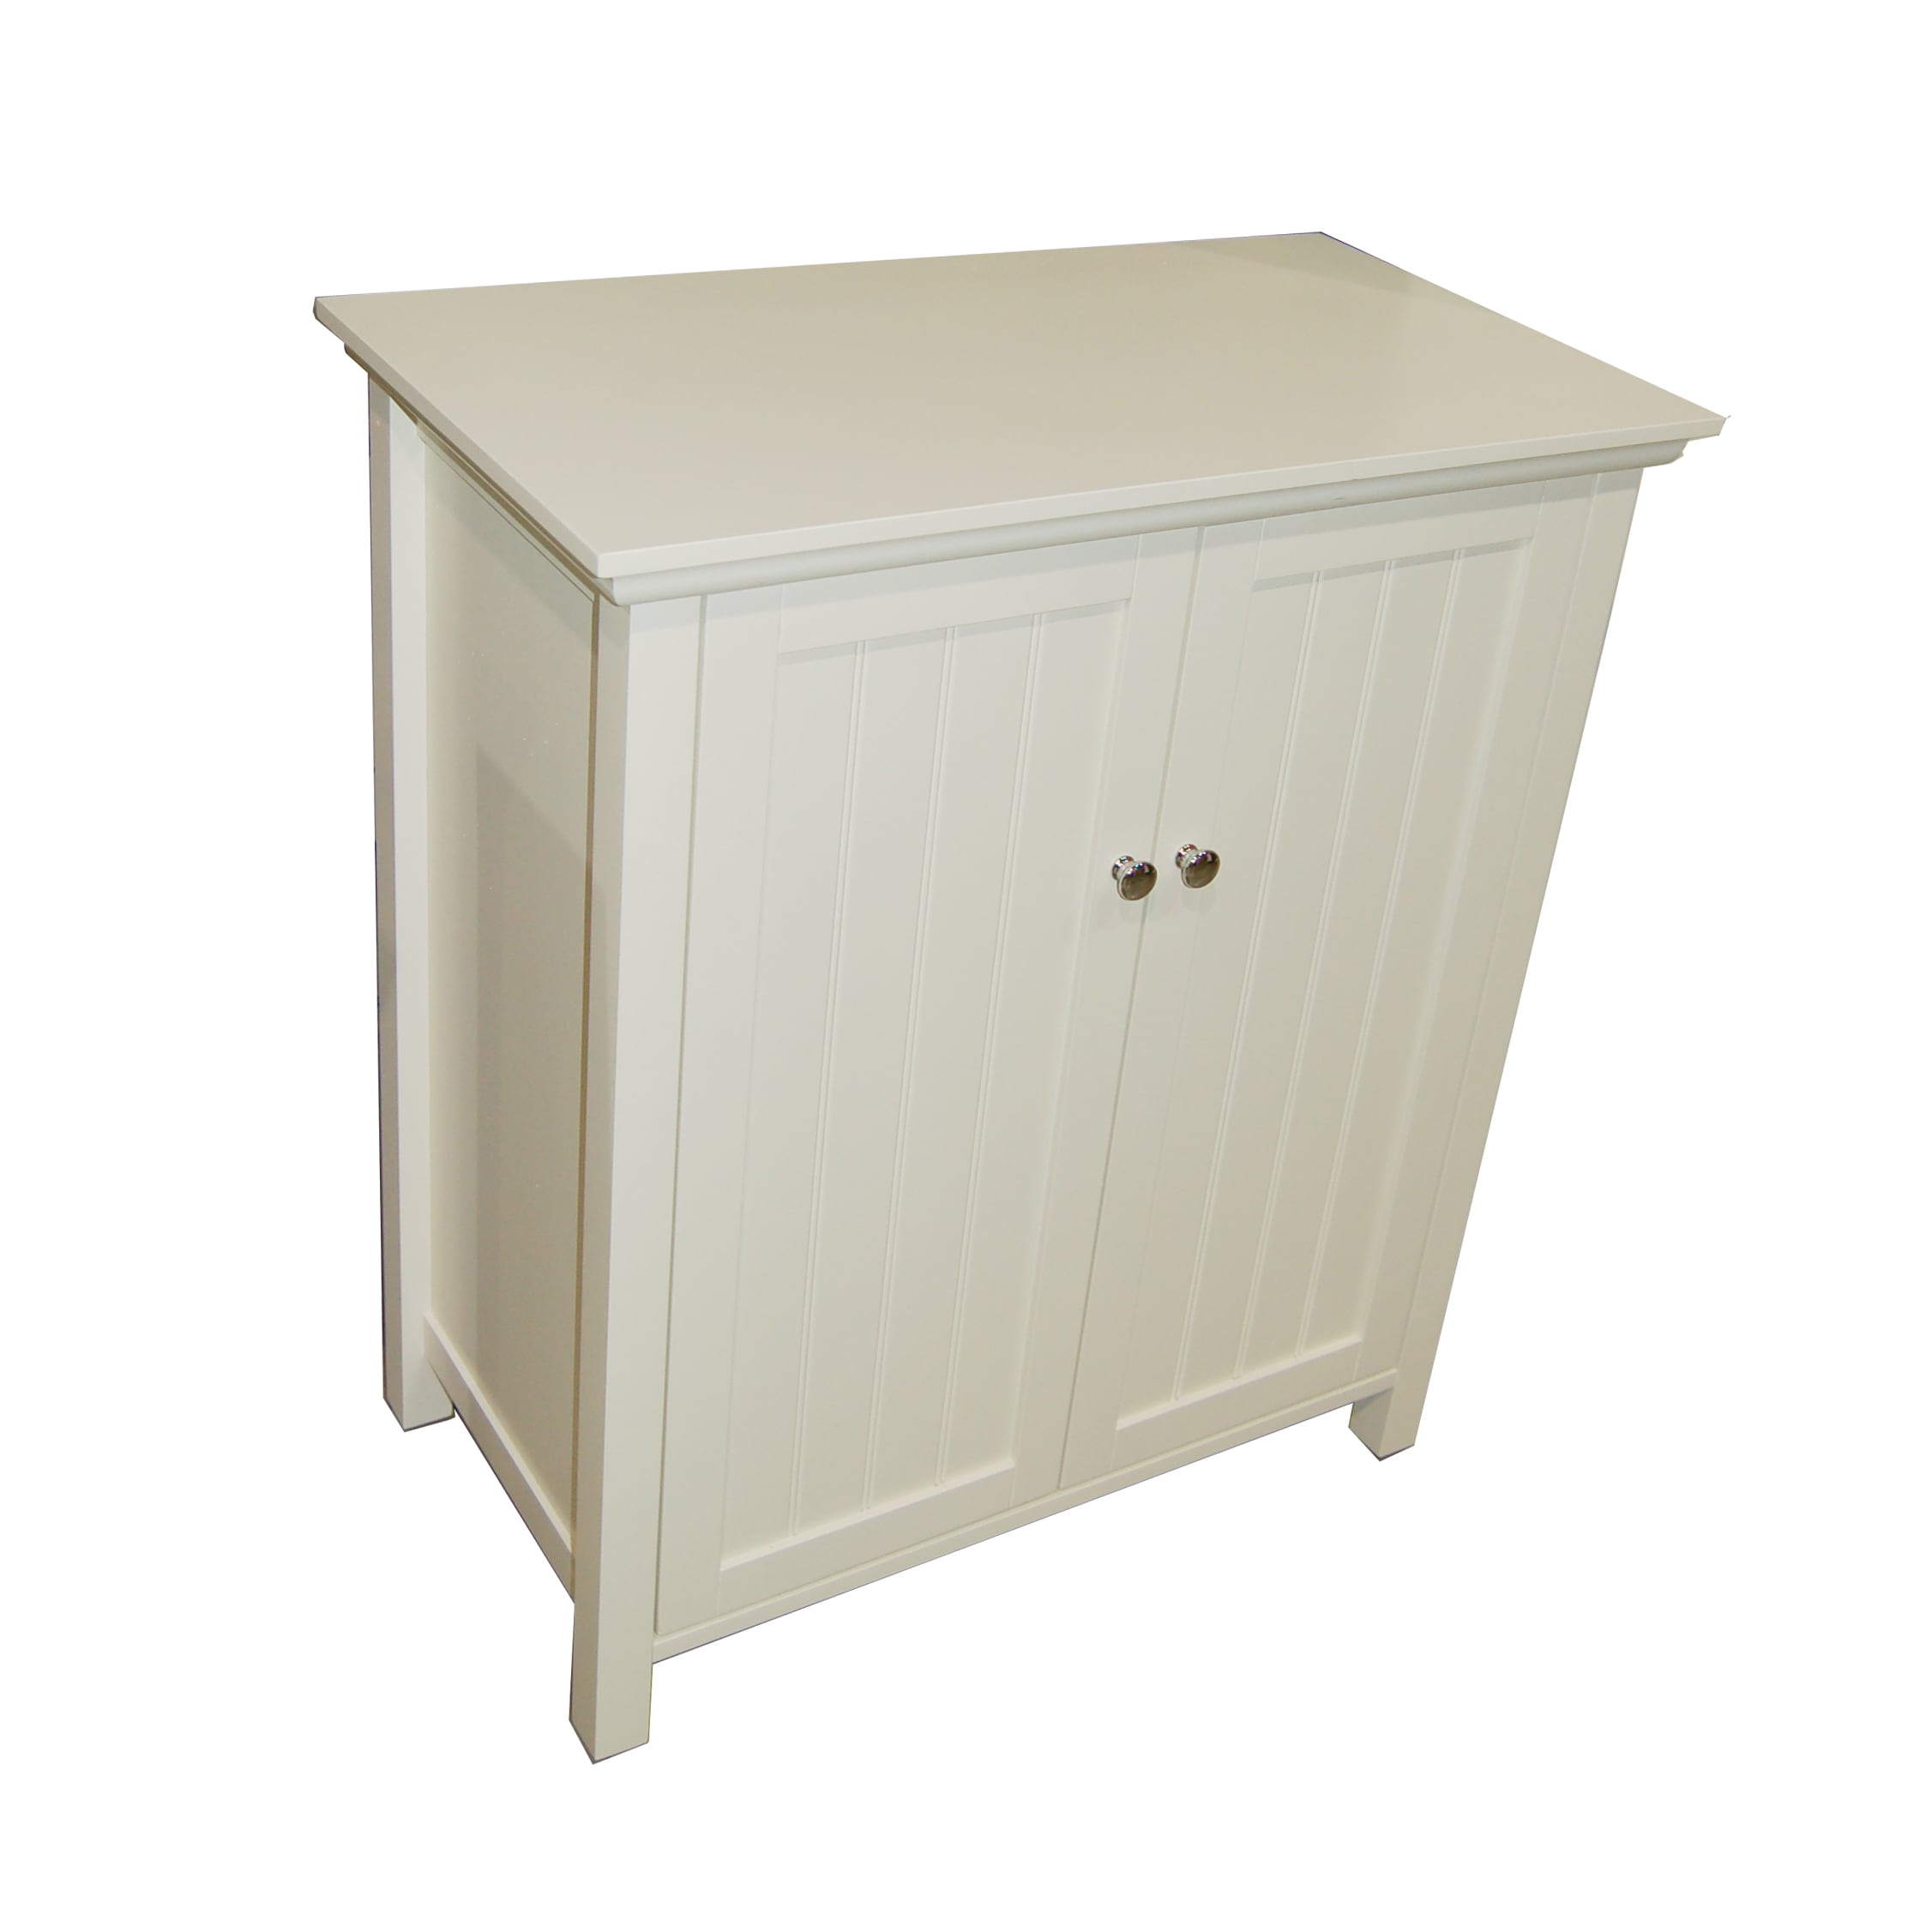 Simple Living Antique White Bathroom Floor Cabinet Overstock Shopping Great Deals On Simple